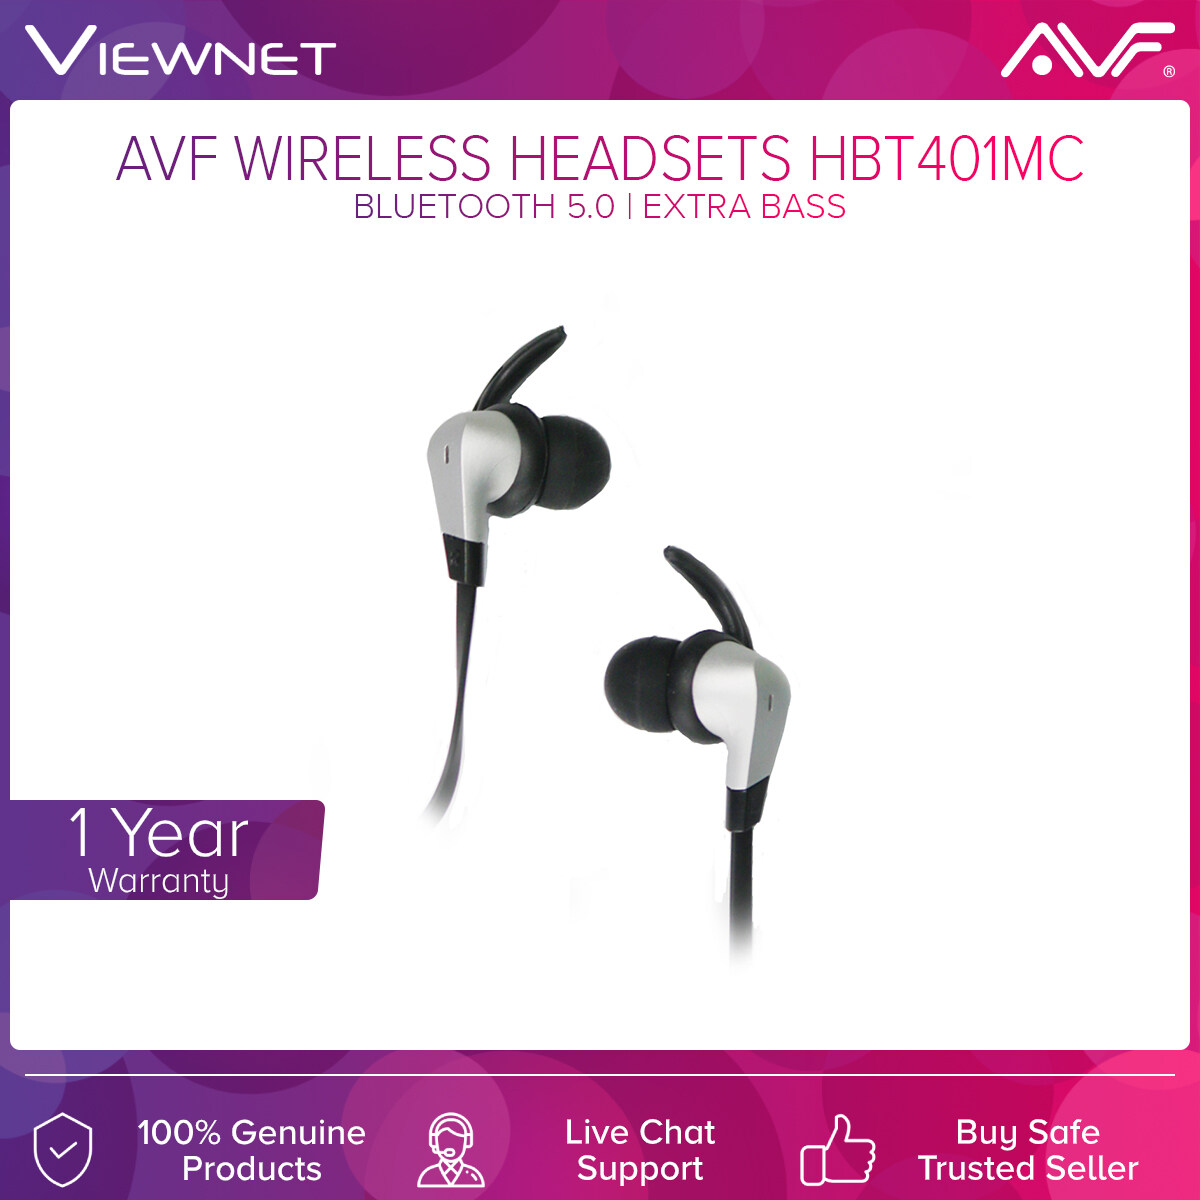 AVF Wireless Headsets HBT401-MC with Bluetooth 5.0, Extra Bass, Built-In Memory Card Slot, Splash Proof IPX2, High Defination Transmission